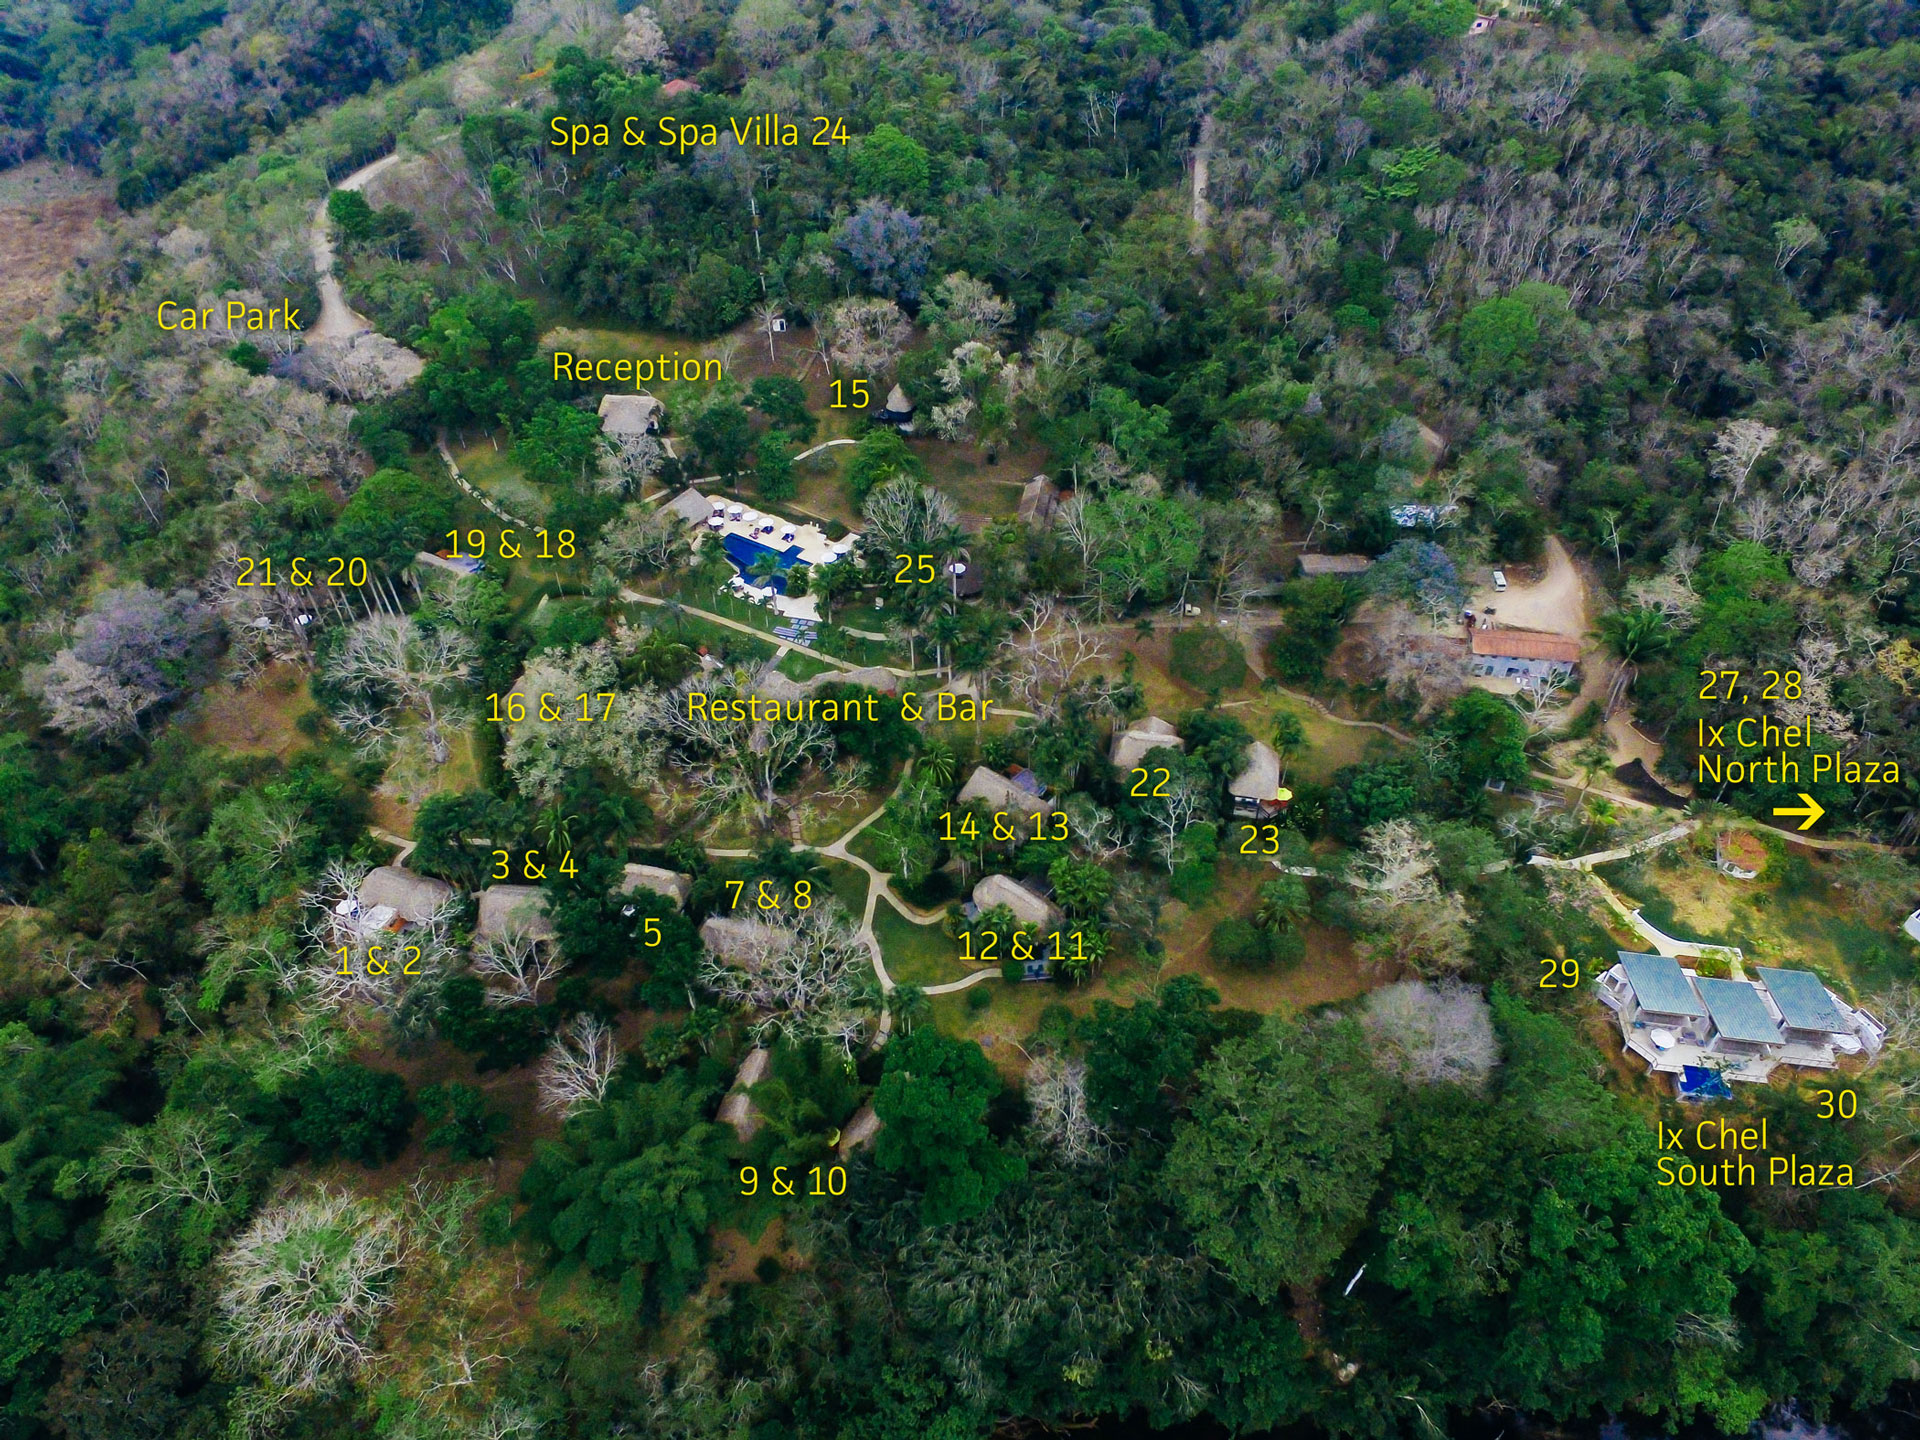 Aerial photograph of The Lodge at Chaa Creek in Belize, with 16 cottage rooms, 3 suites & 5 villas.